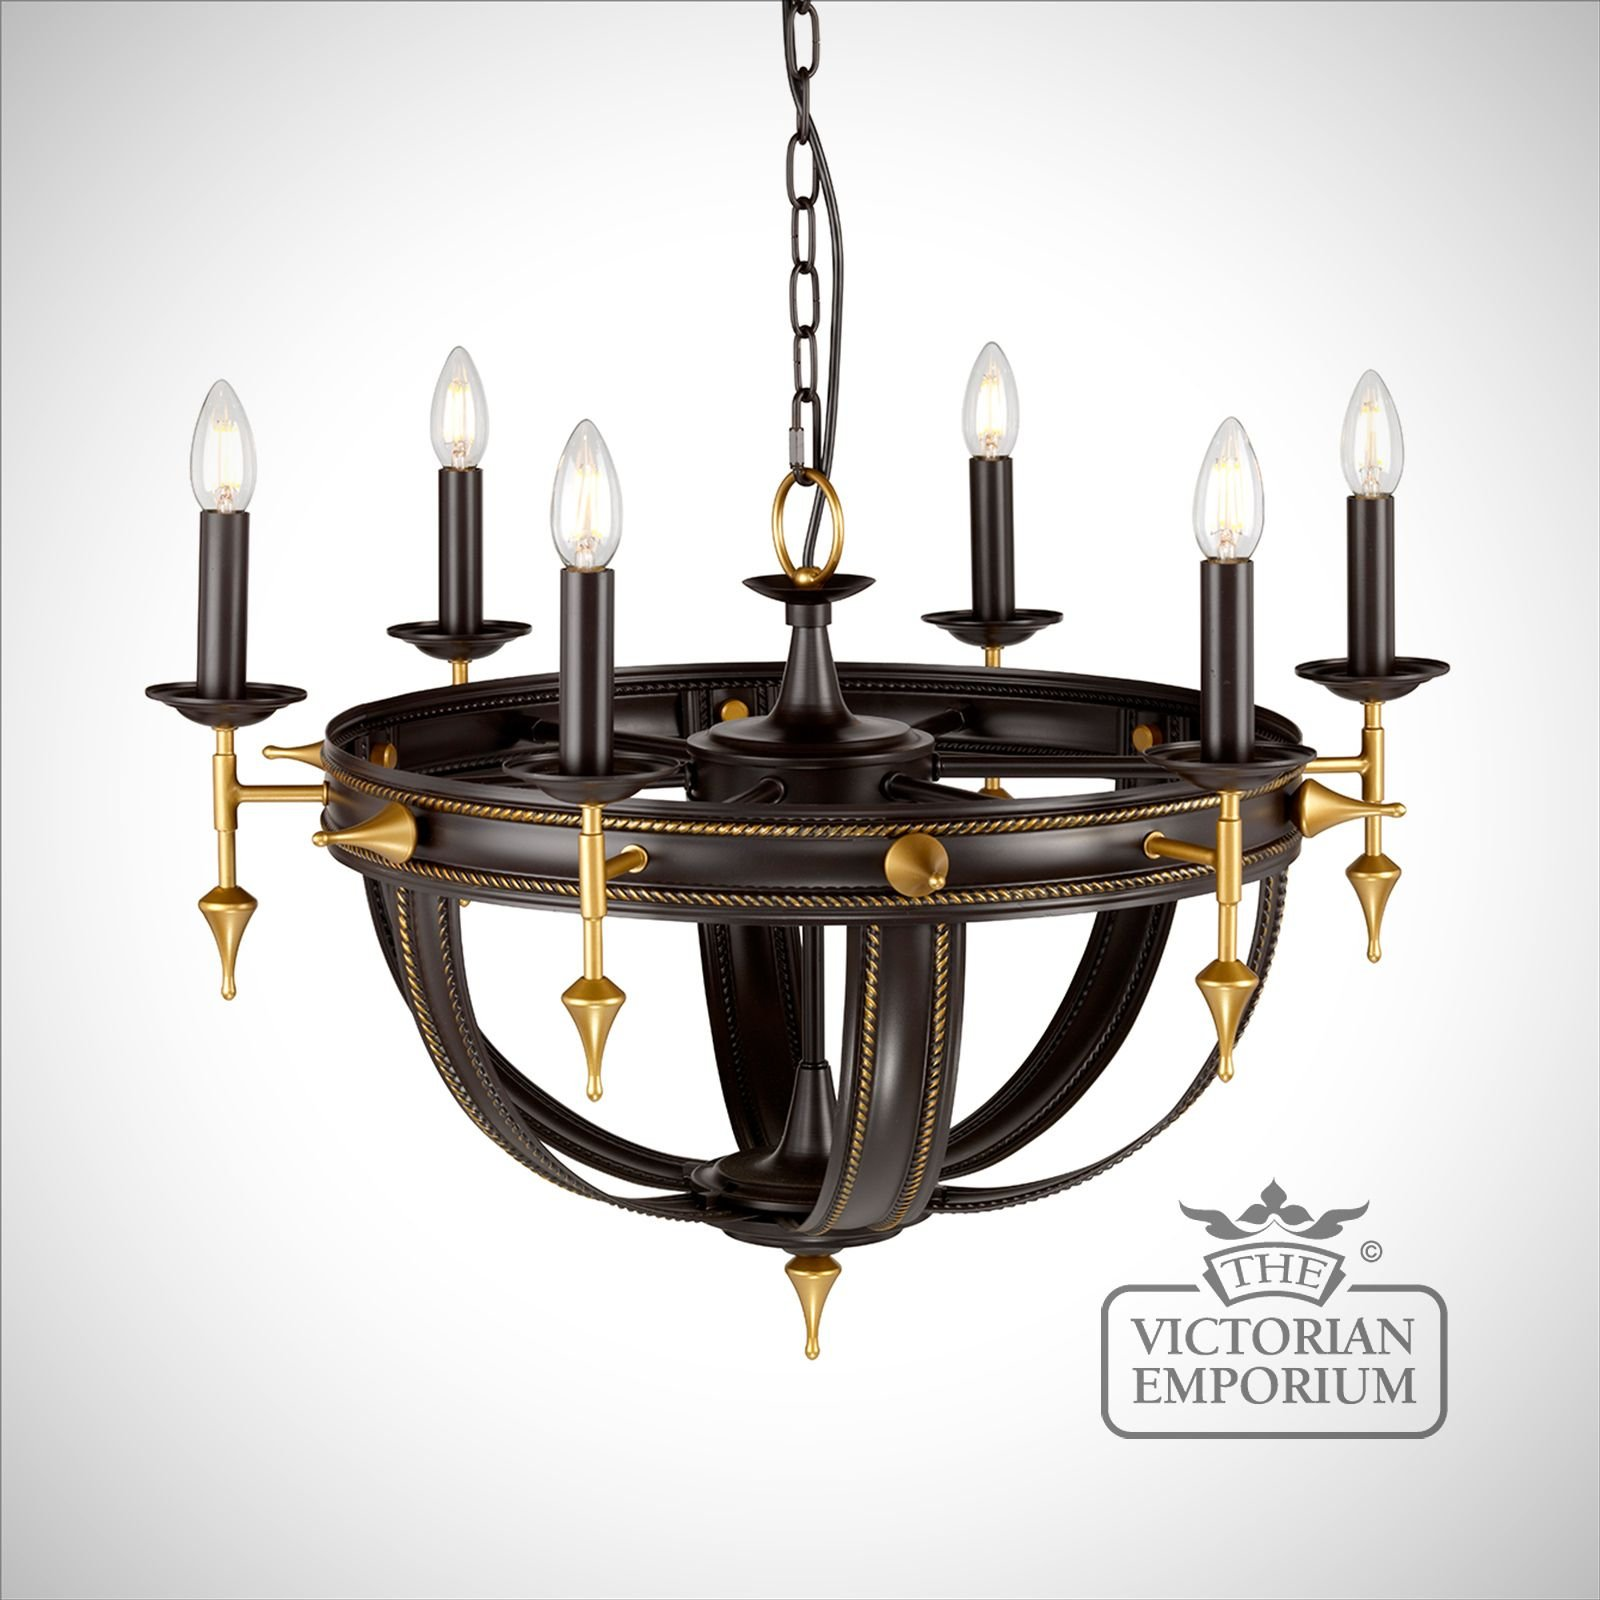 Traditional Silver Haematite Gate Post Lantern Or Driveway: Regal 6 Light Chandelier In Old Rubbed Bronze And Gold